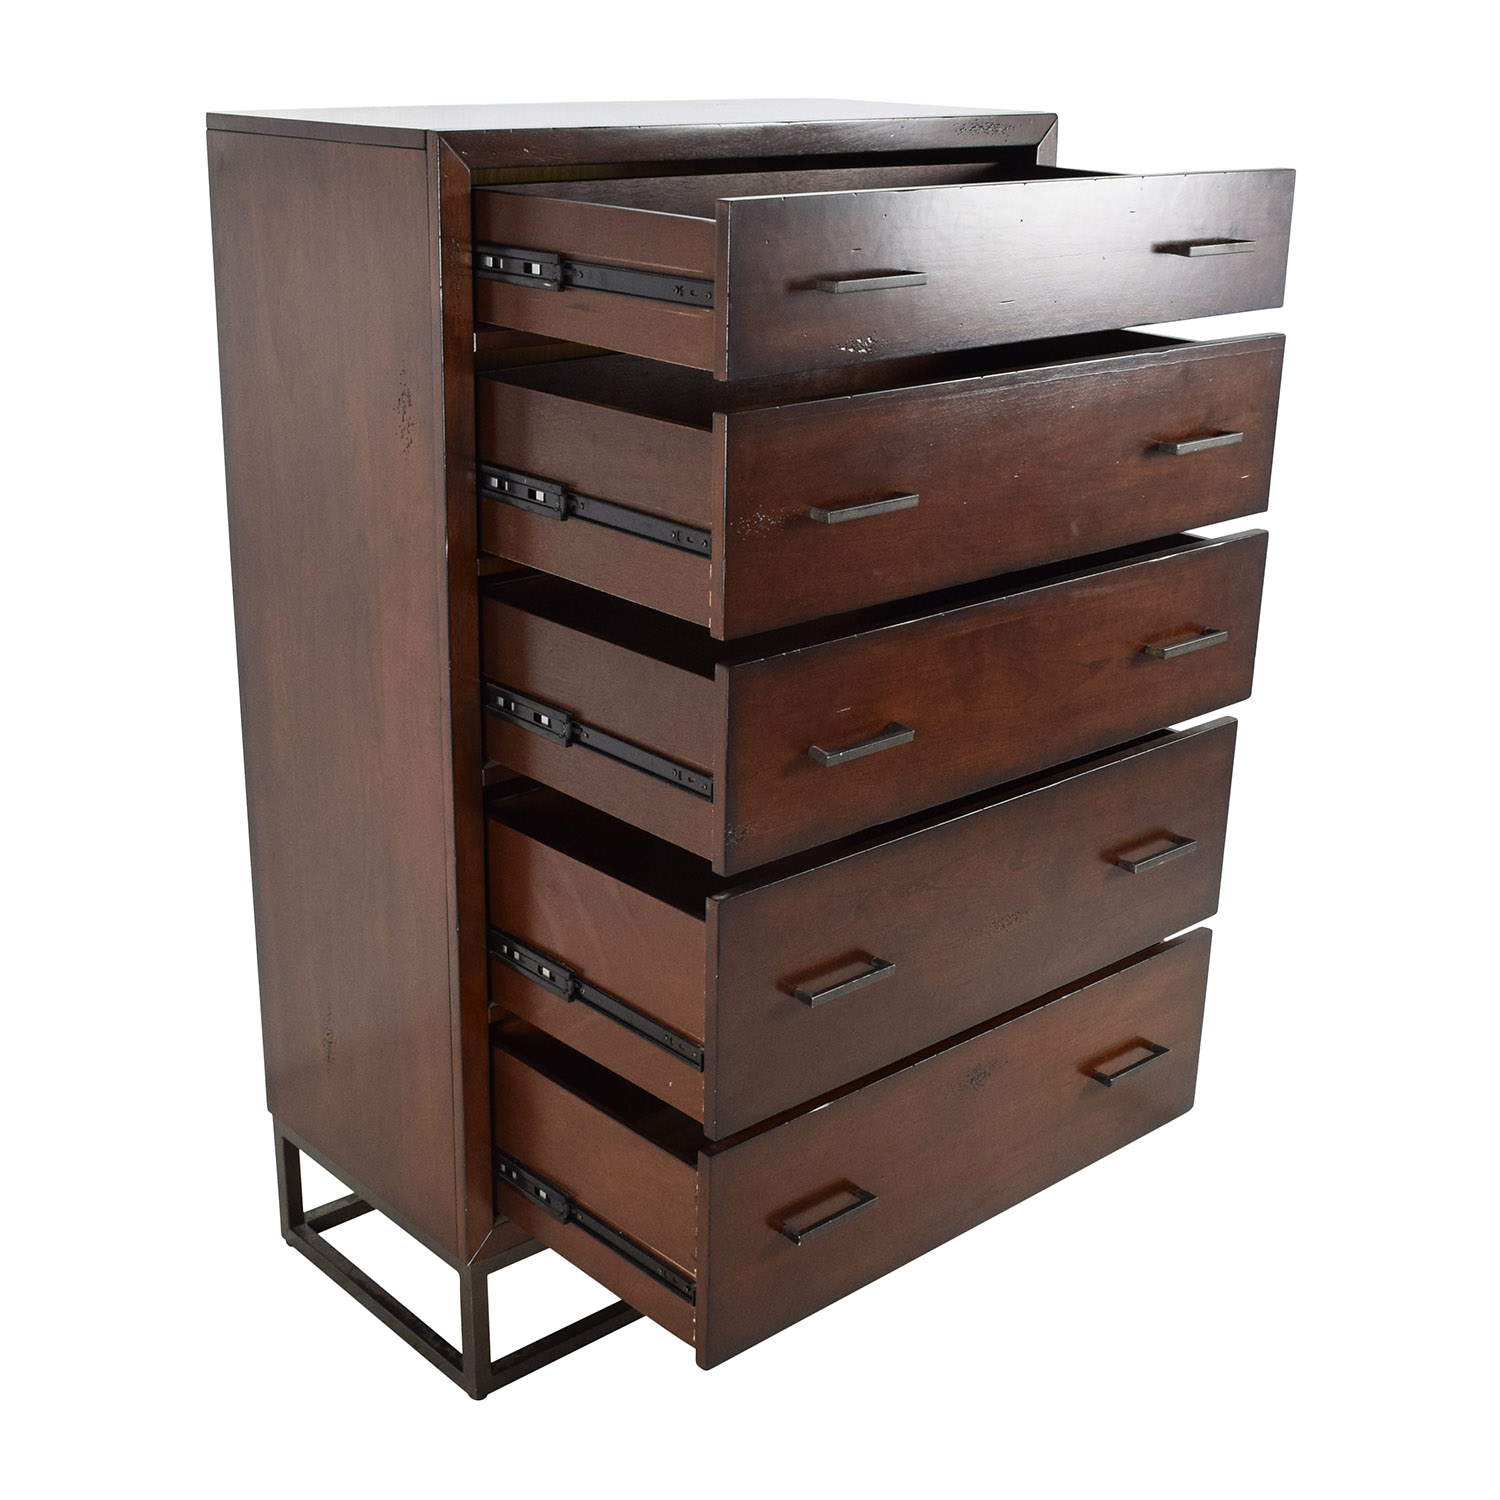 Dressers on sale full size of lacquer dresser ikea for Cheap dresser sets for sale